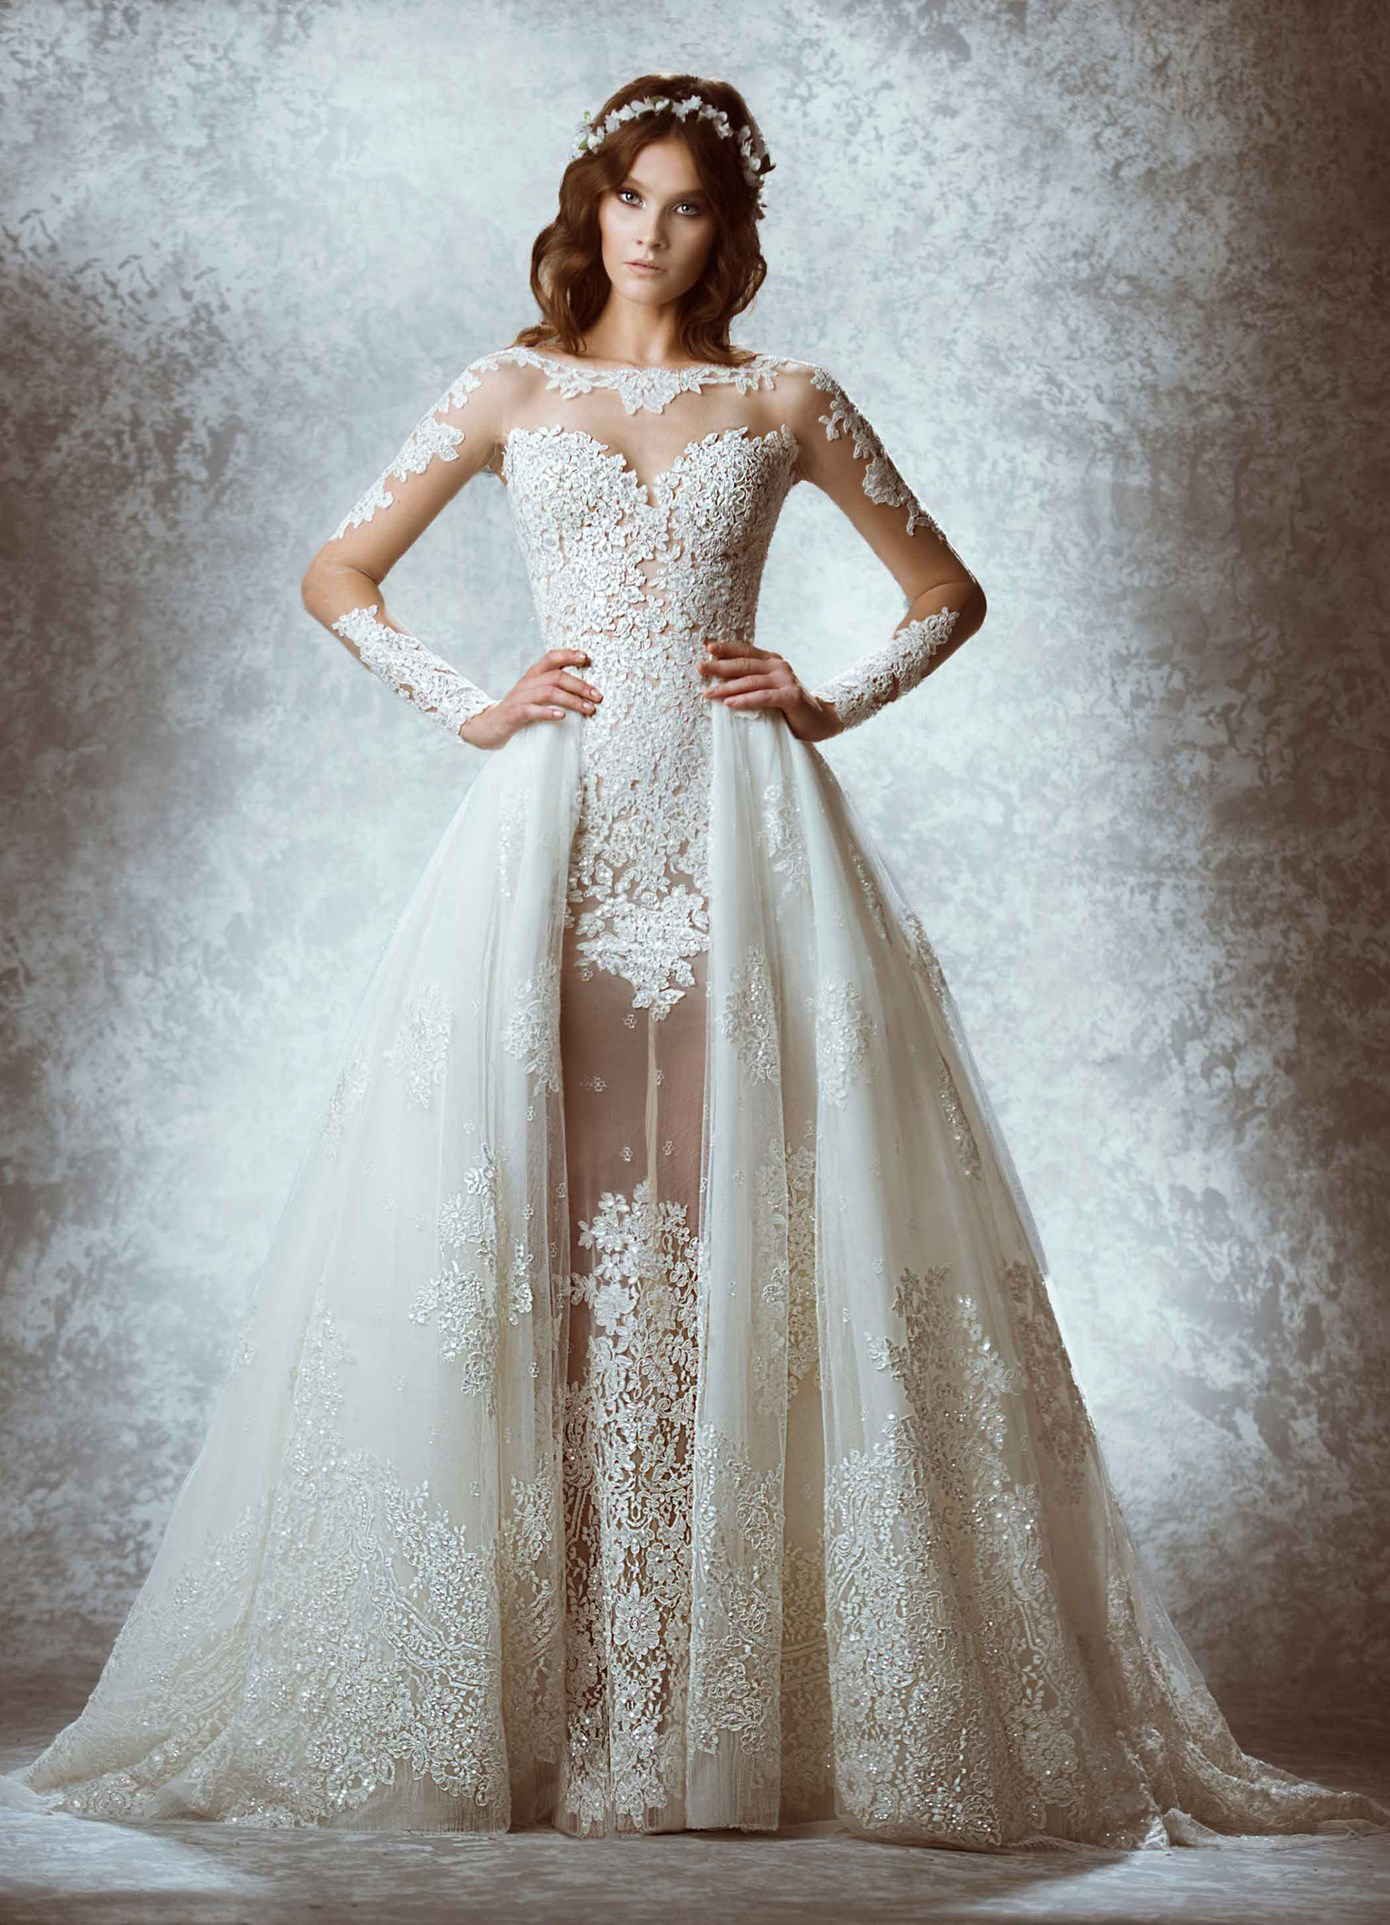 d0e752752d US Based Company Come see our luxurious showrooms in NJ. Home of Bridal  Wedding Dress Couture Main Office and Bridal Center.